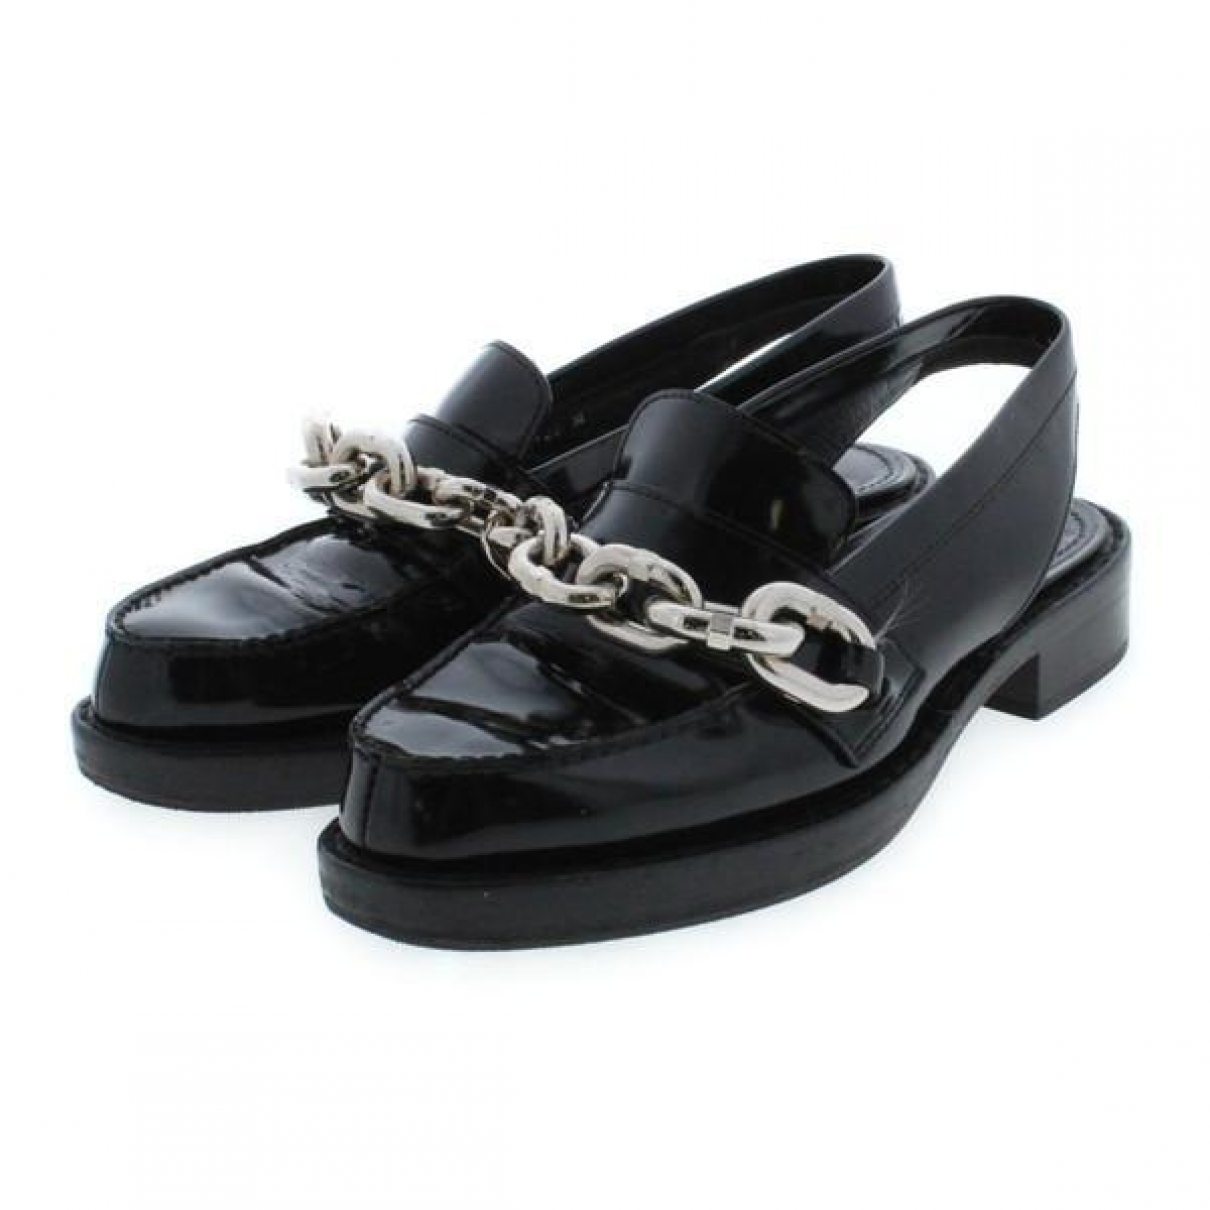 Louis Vuitton \N Black Patent leather Flats for Women 35 IT